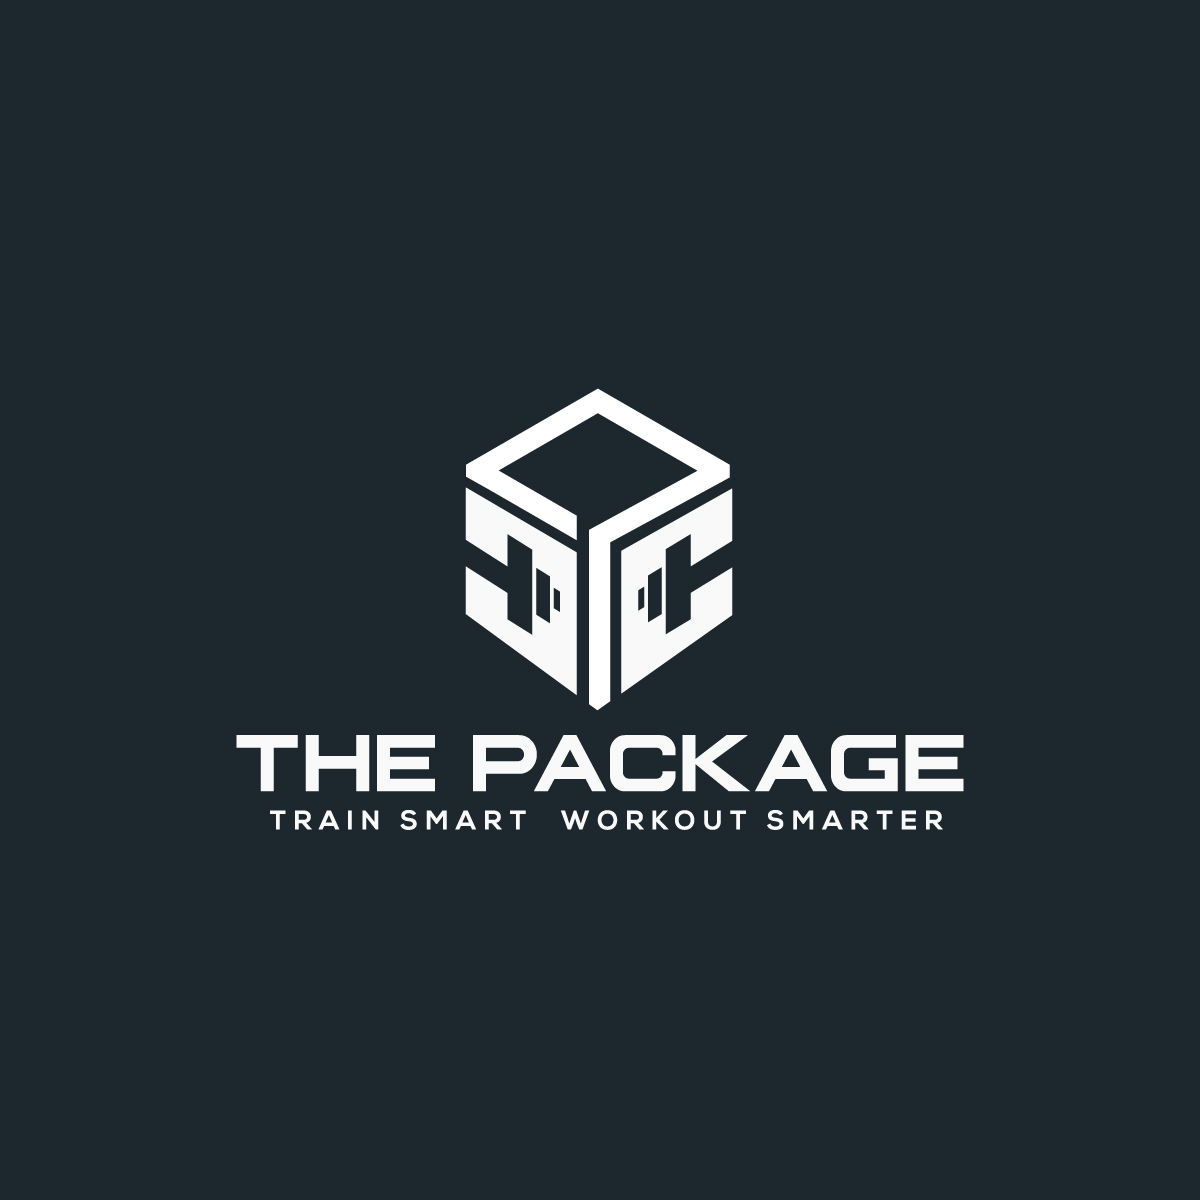 The Package par INCREDIBLEDESIGNERS - DesignCrowd